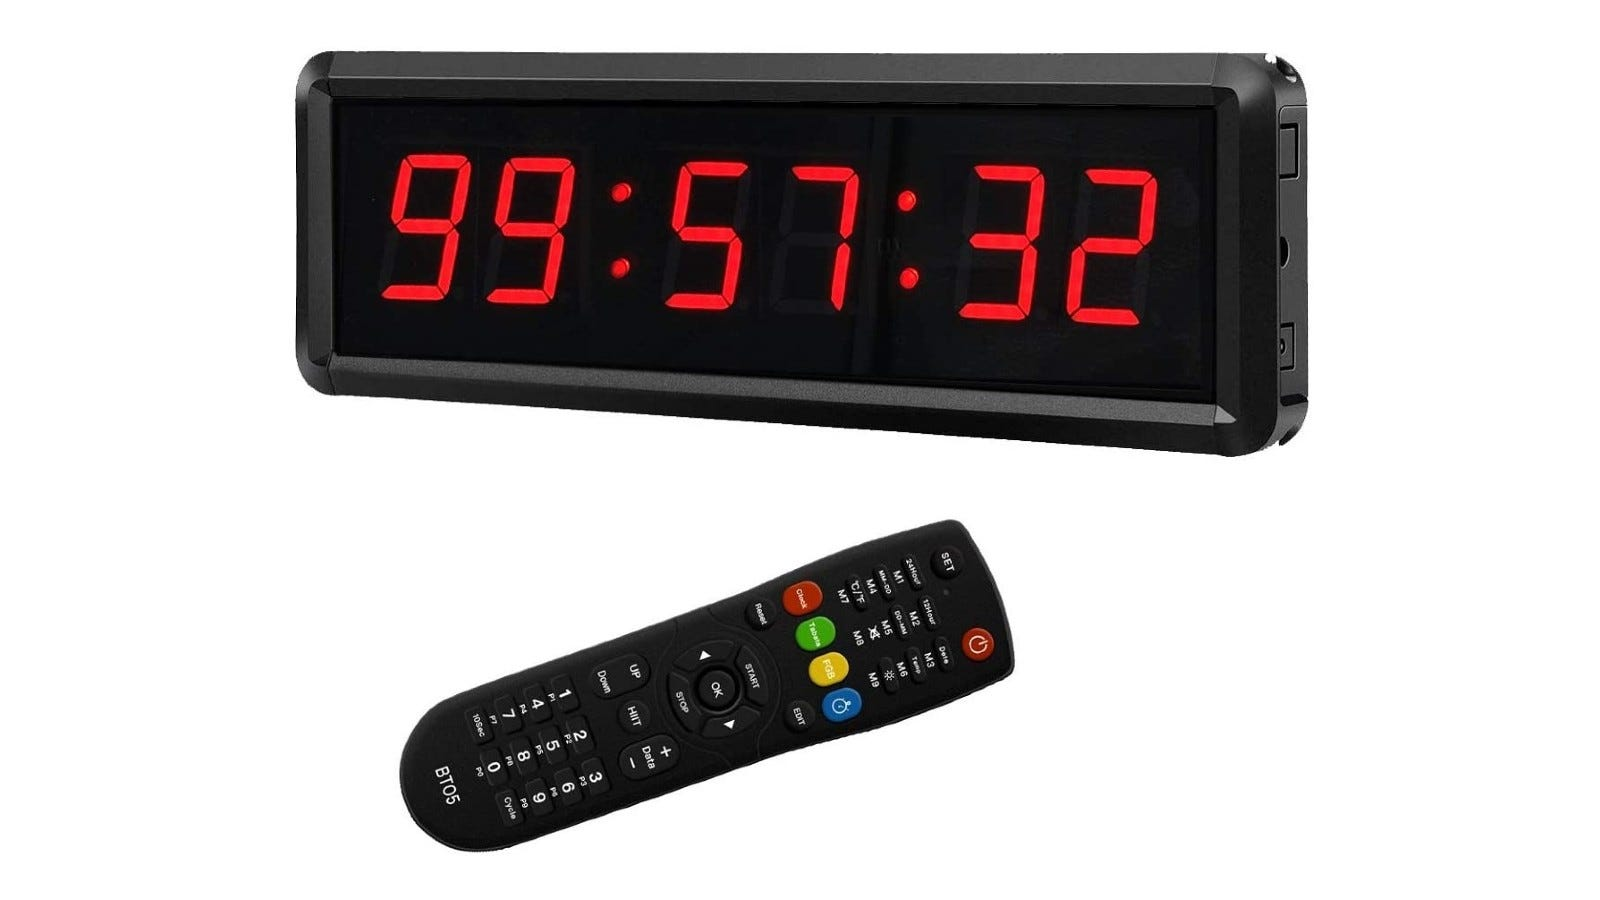 a multifunctional countdown timer and a remote